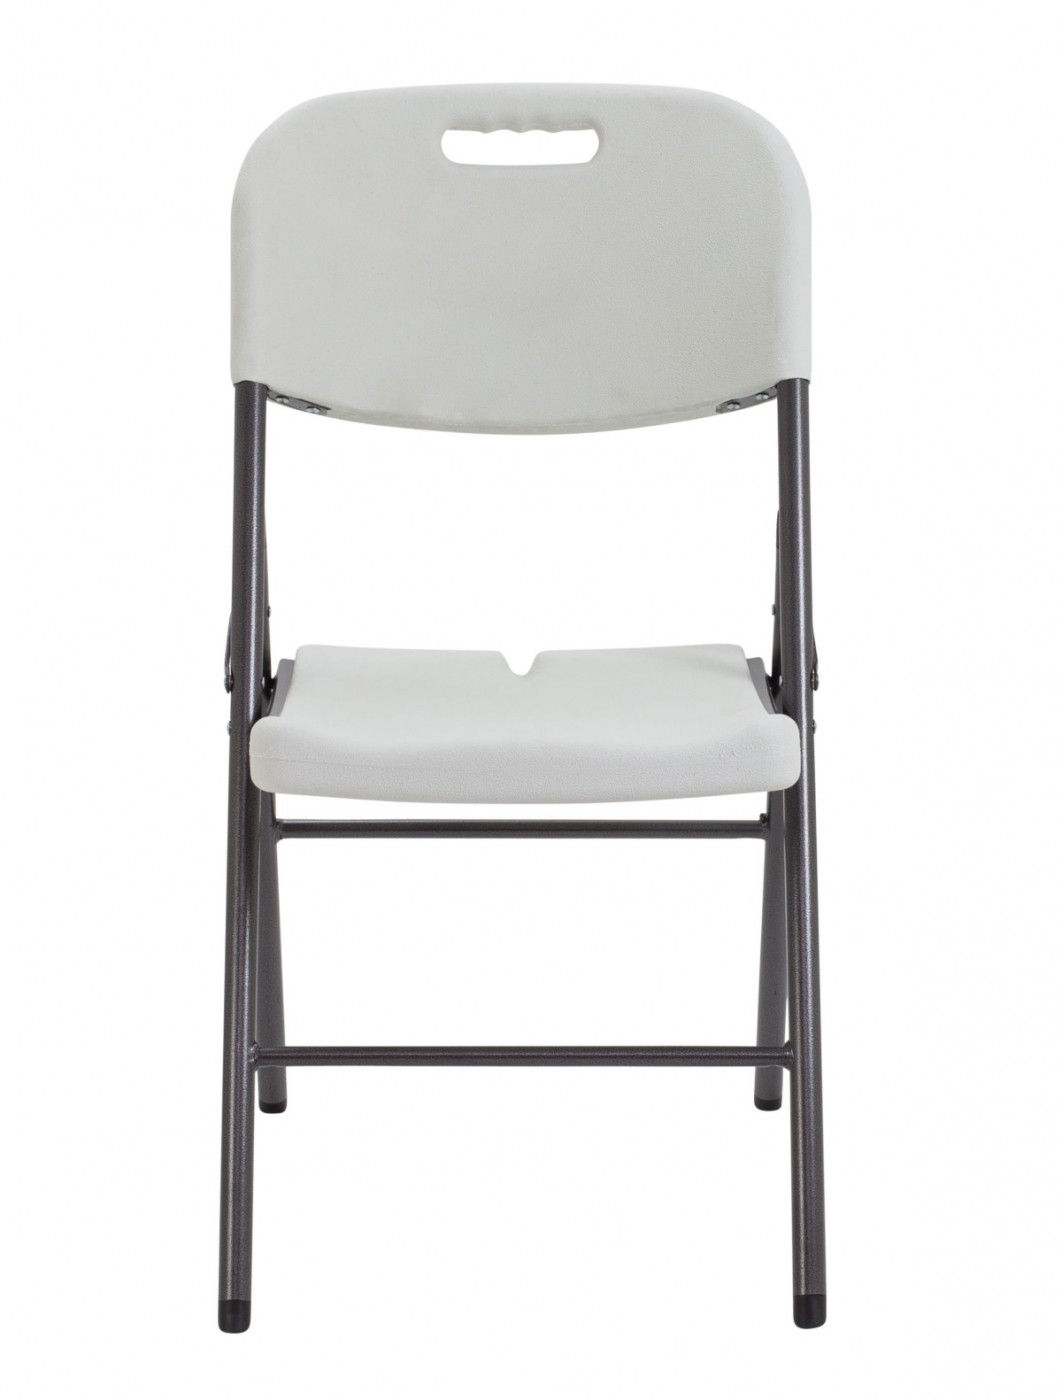 Astounding Folding Chairs Tc Morph White Folding Chair Of0410Wh Pabps2019 Chair Design Images Pabps2019Com